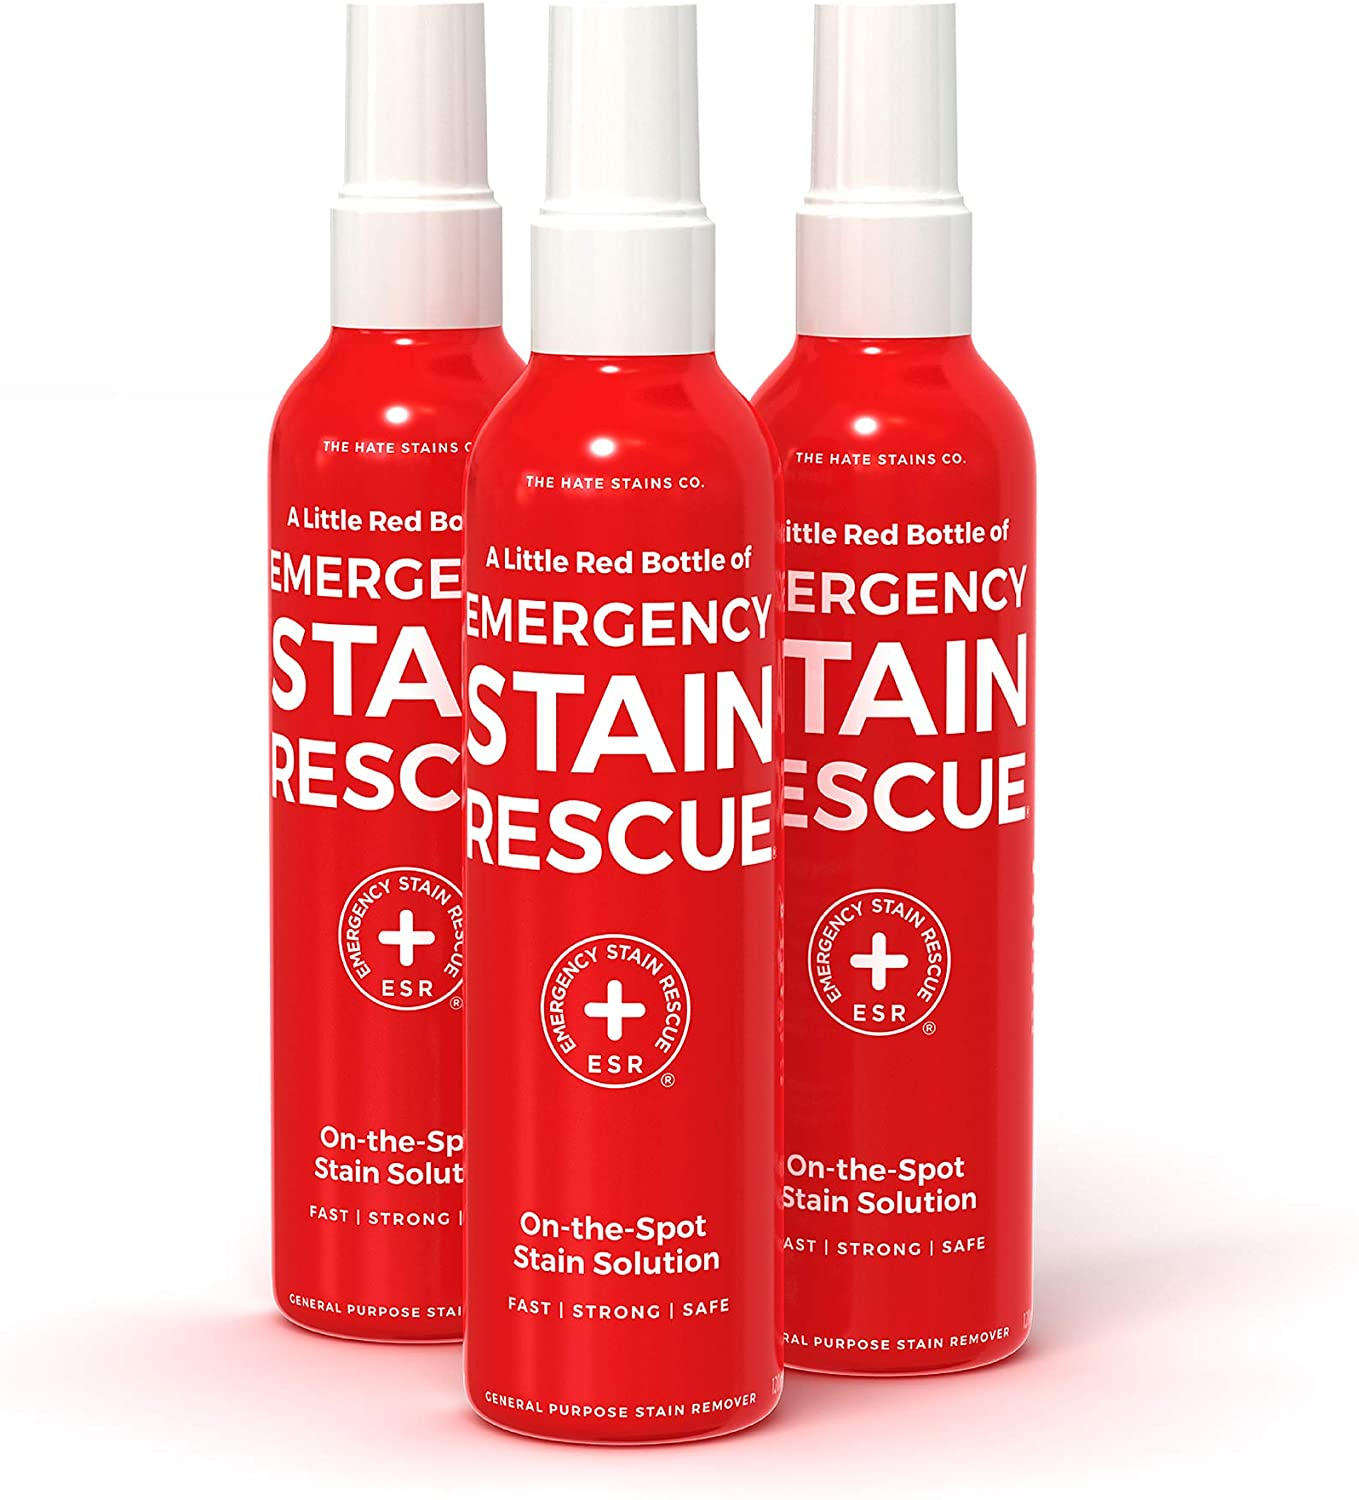 Emergency Stain Rescue Stain Remover – All Purpose Direct Spray For Carpet, Upholstery, Clothes, Add to Laundry. Works on Fresh & Old Organic or Inorganic Stains (120ml, 4 oz Spray Bottles) 3 Pack